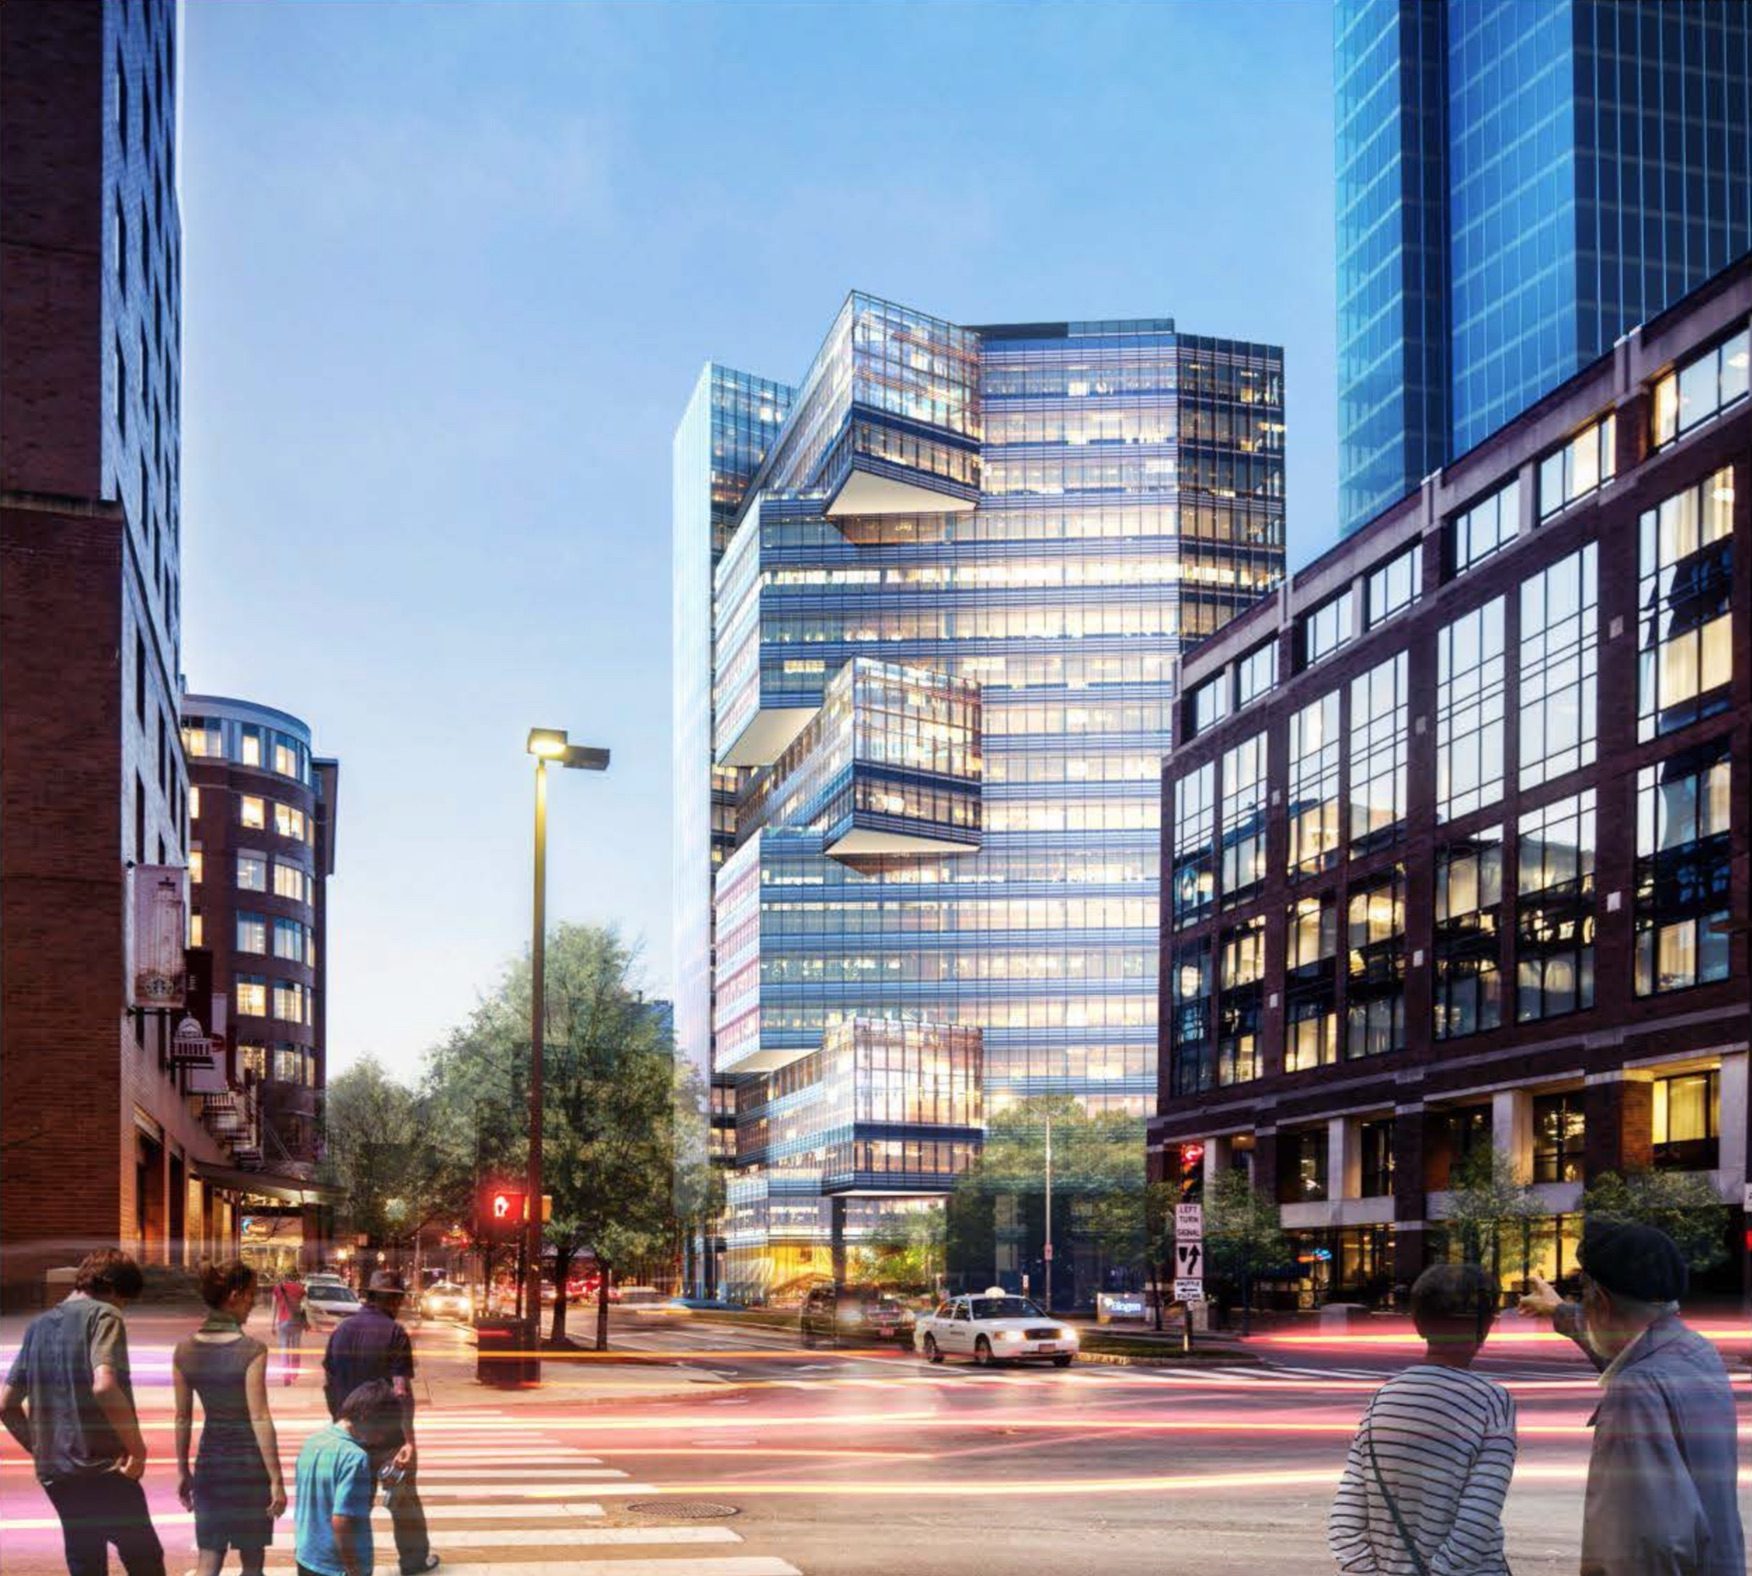 145 broadway kendall square office retail space for lease cambridge boston properties mxd development project district pickard chilton stantec rendering